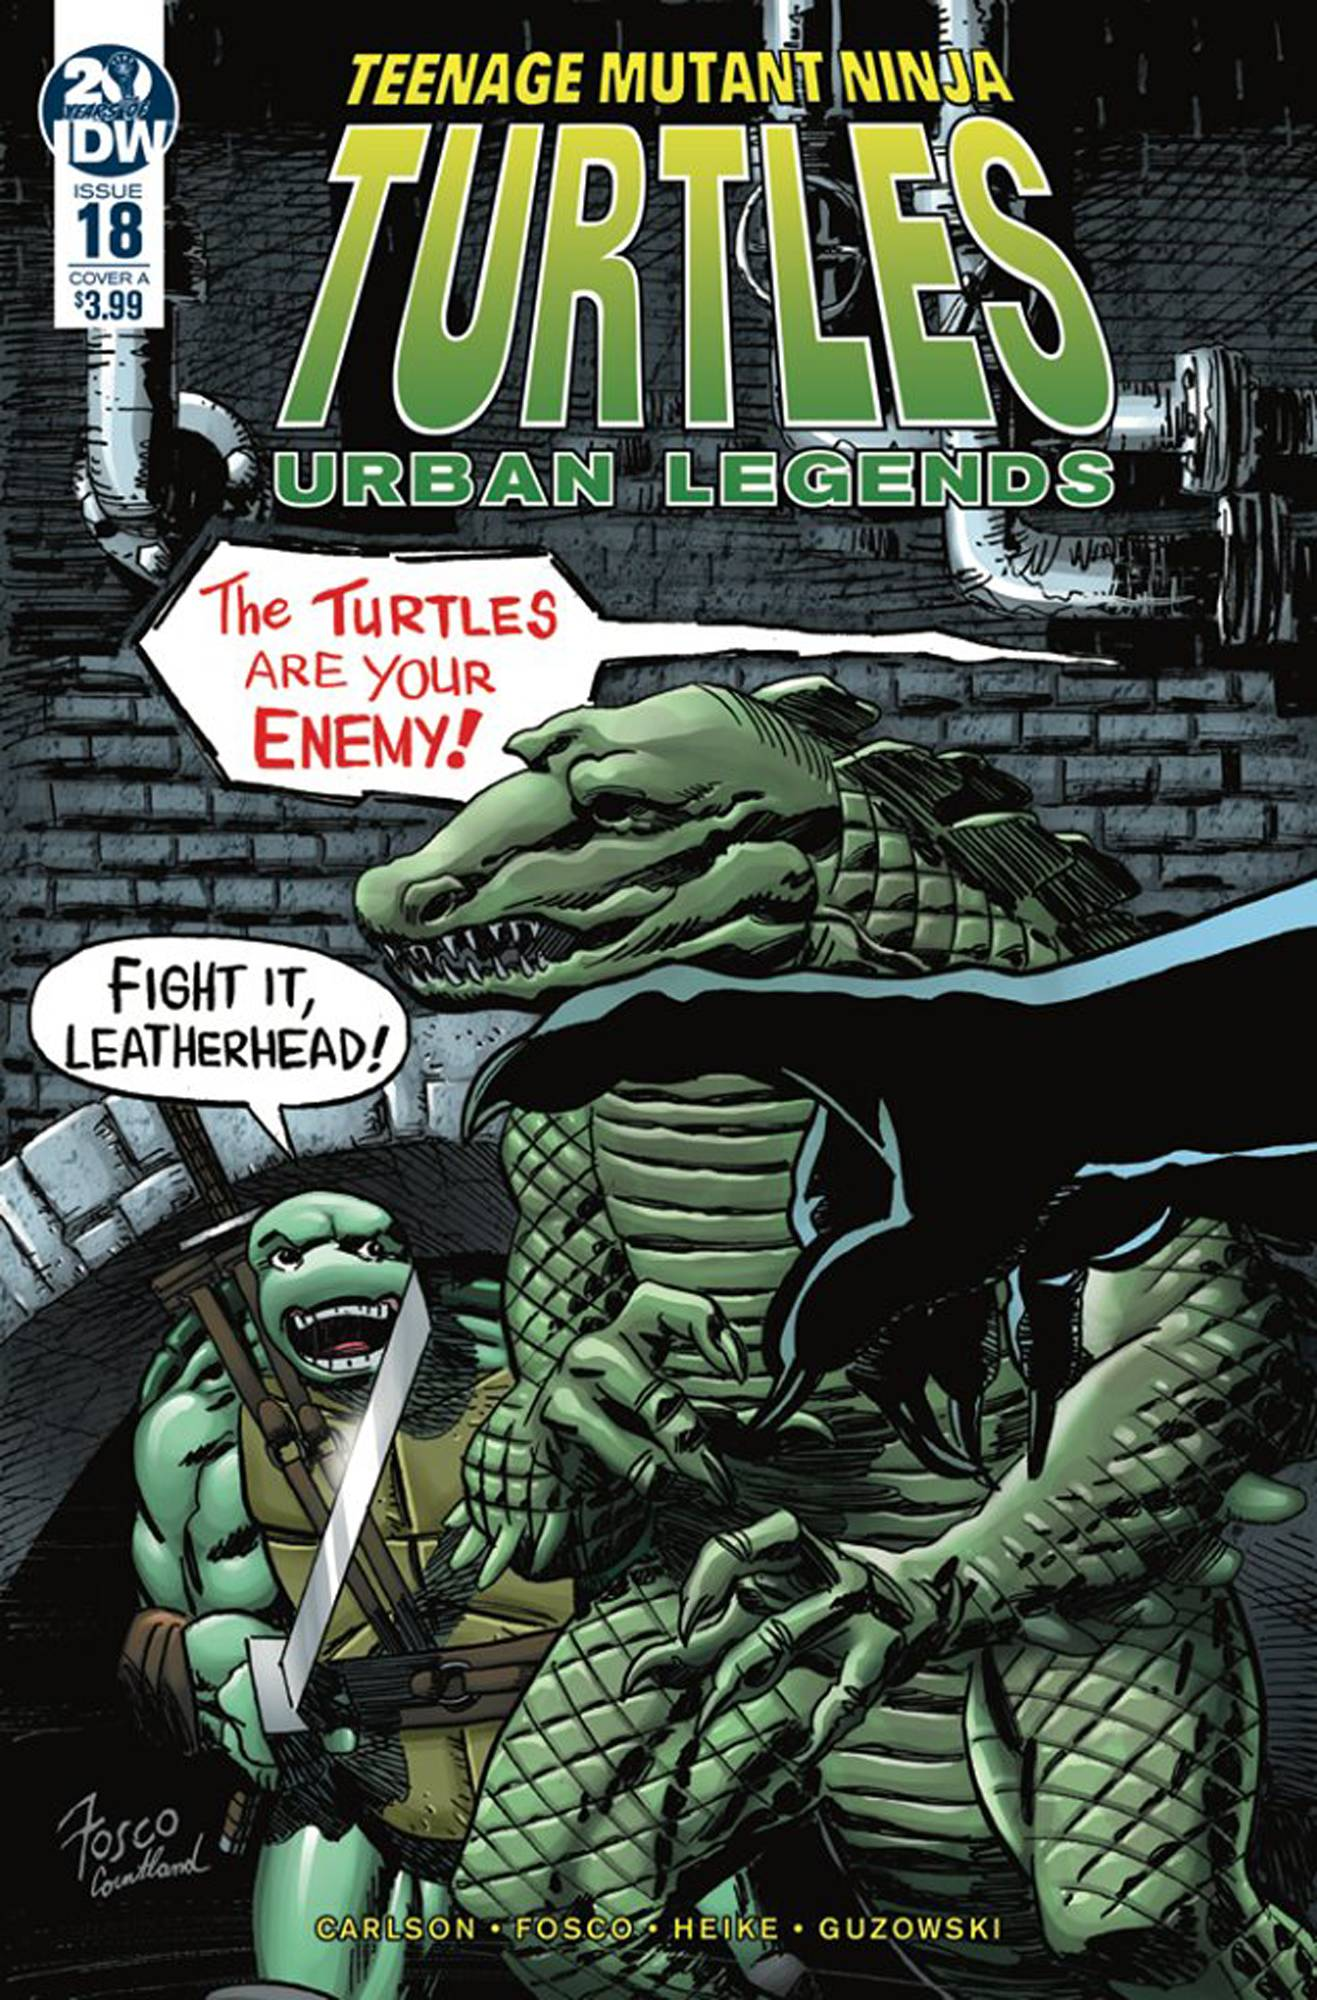 Teenage Mutant Ninja Turtles: Urban Legends #18 (2019)